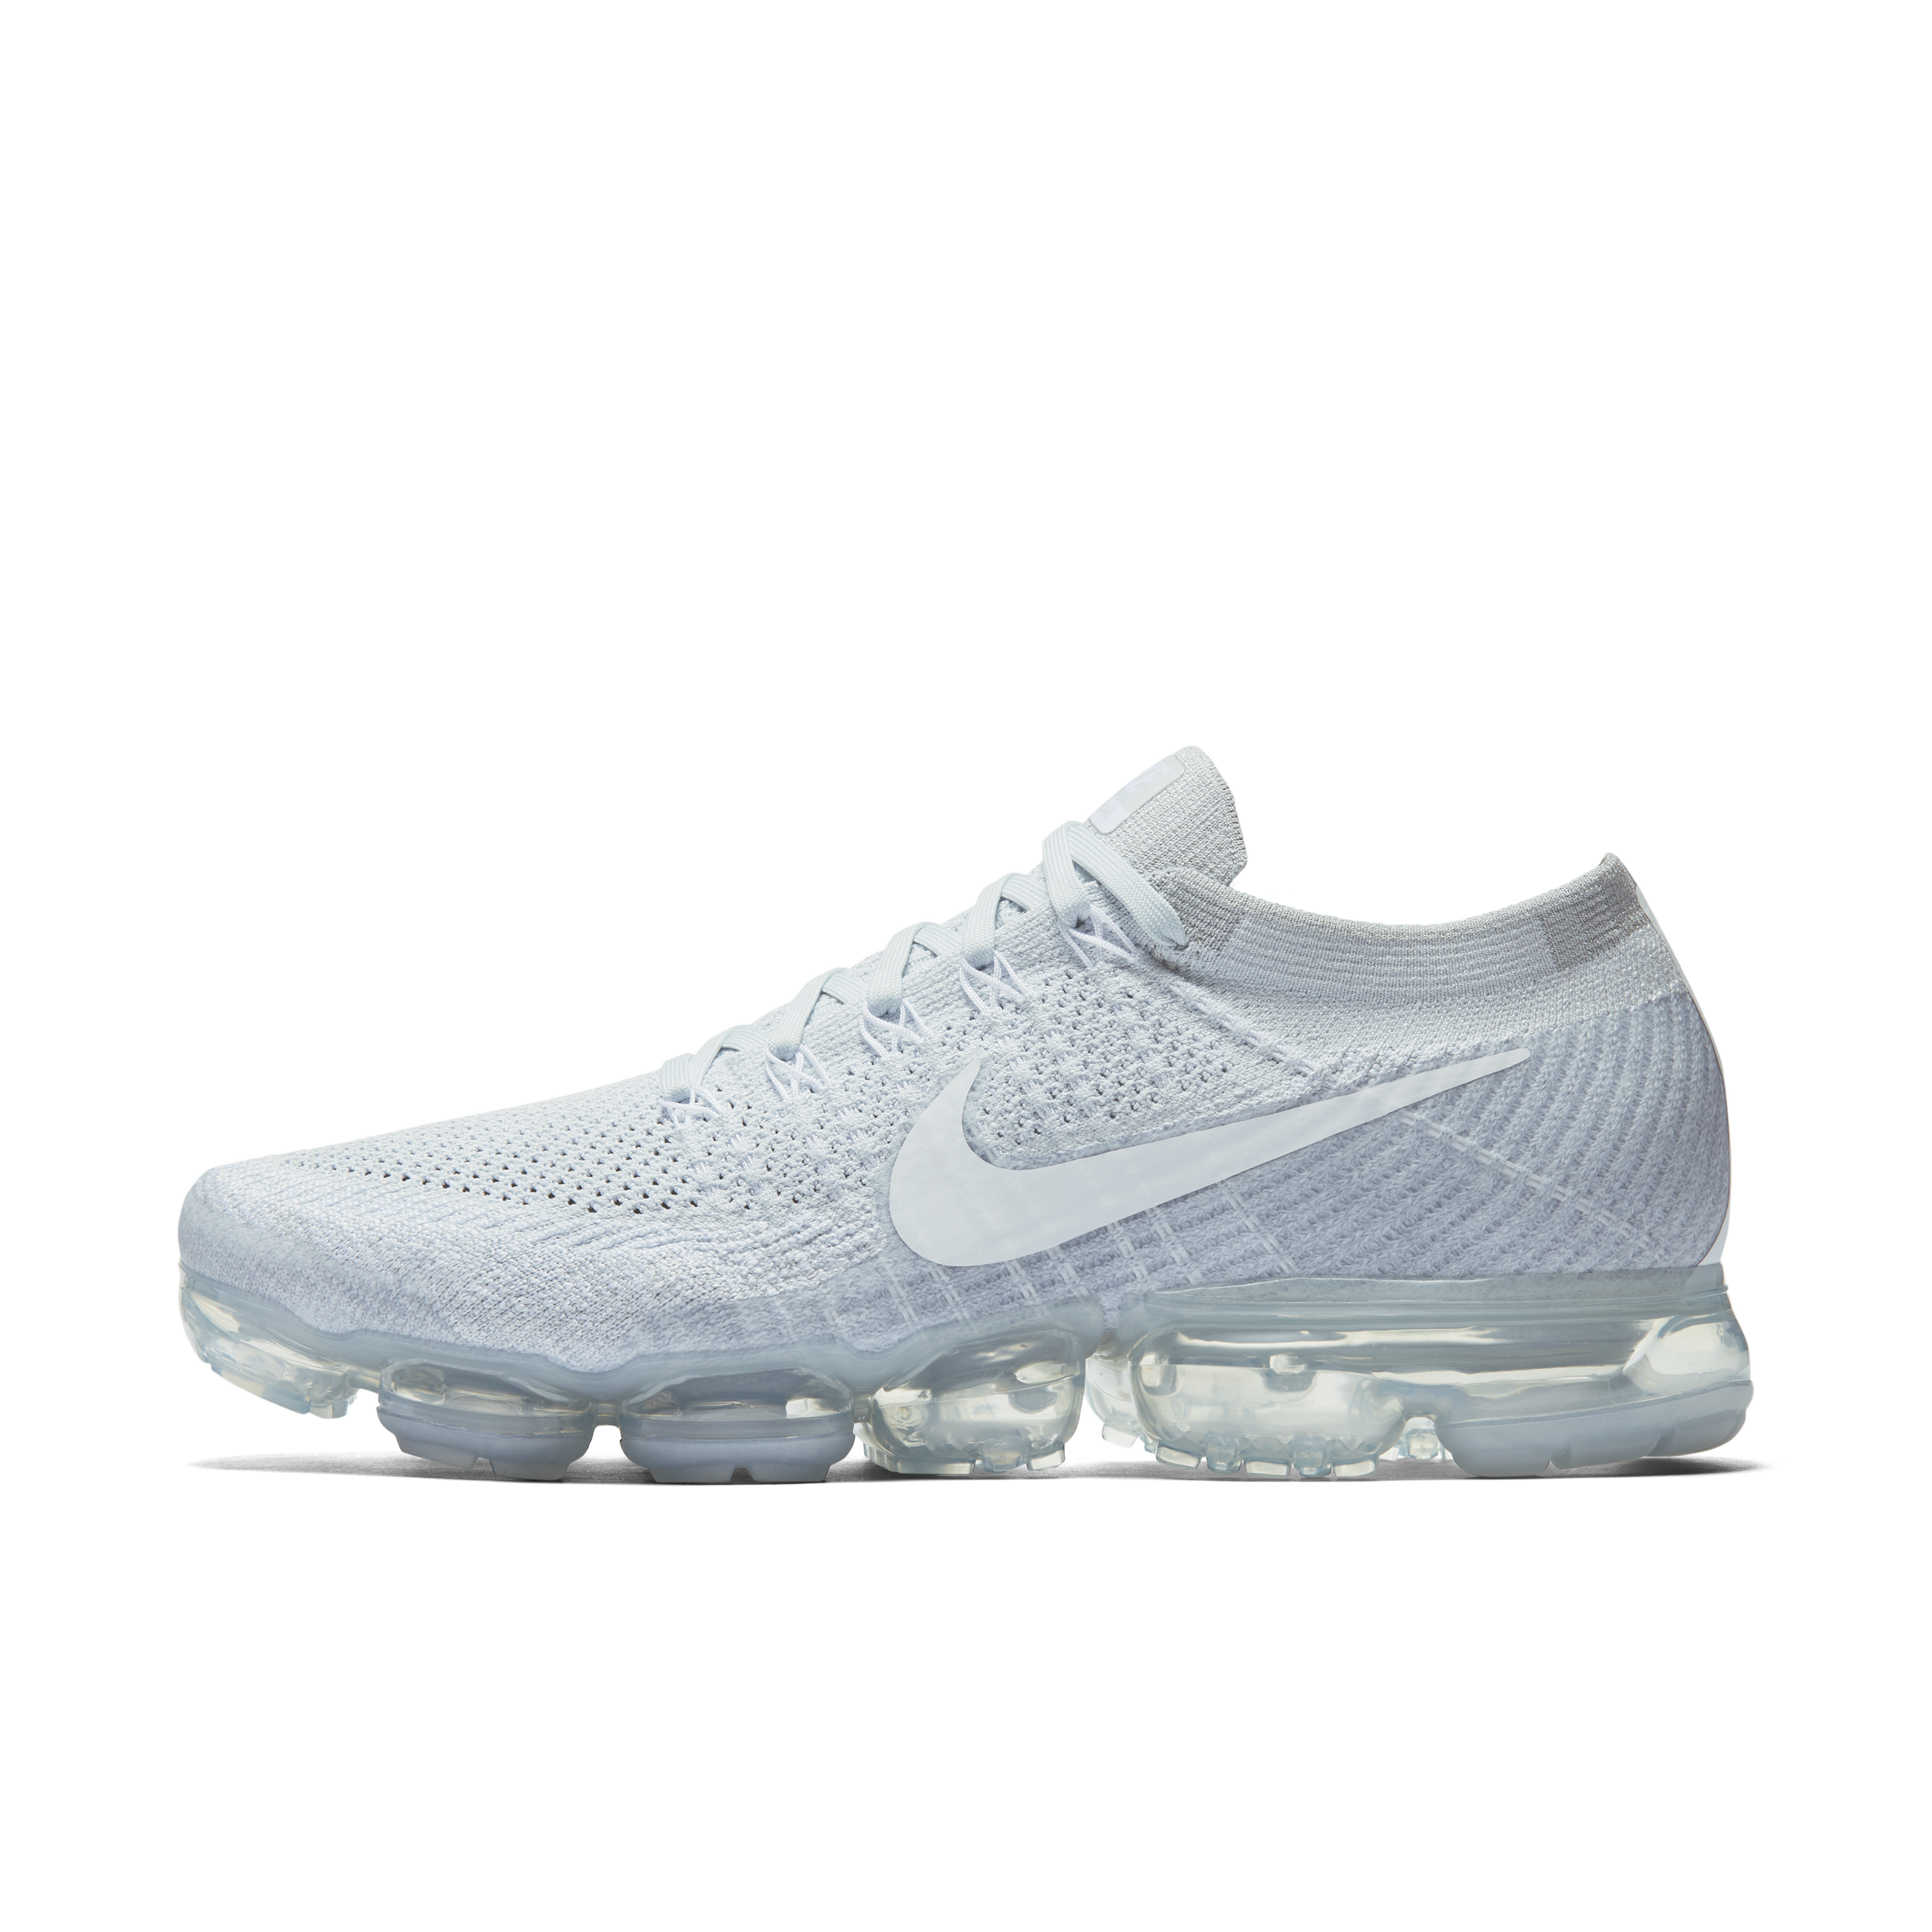 Nike Air VaporMax Flyknit Women's Running Shoes Dark Grey